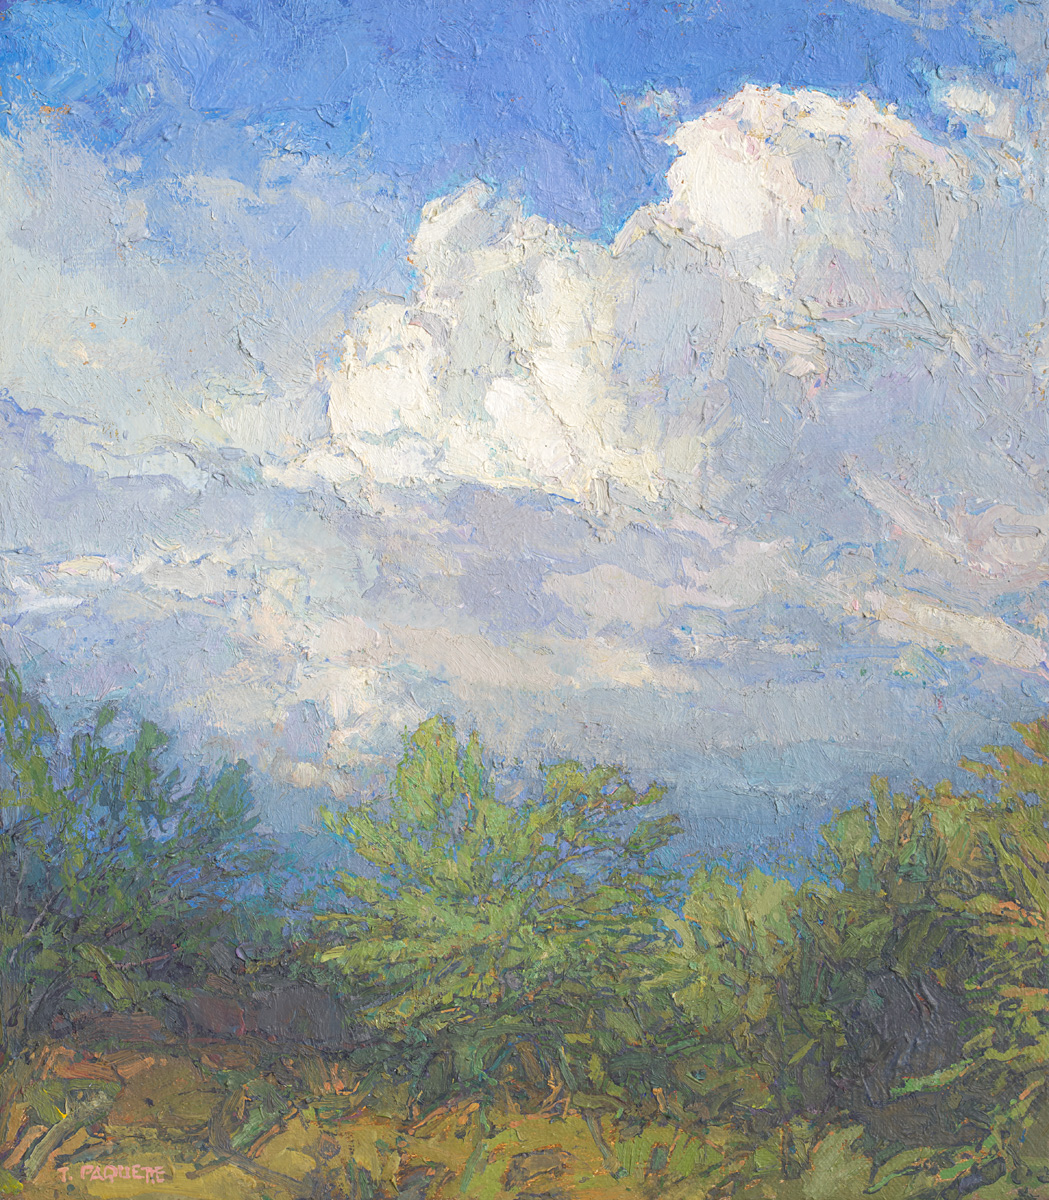 contemporary landscape oil painting of windy day in woods by Thomas Paquette